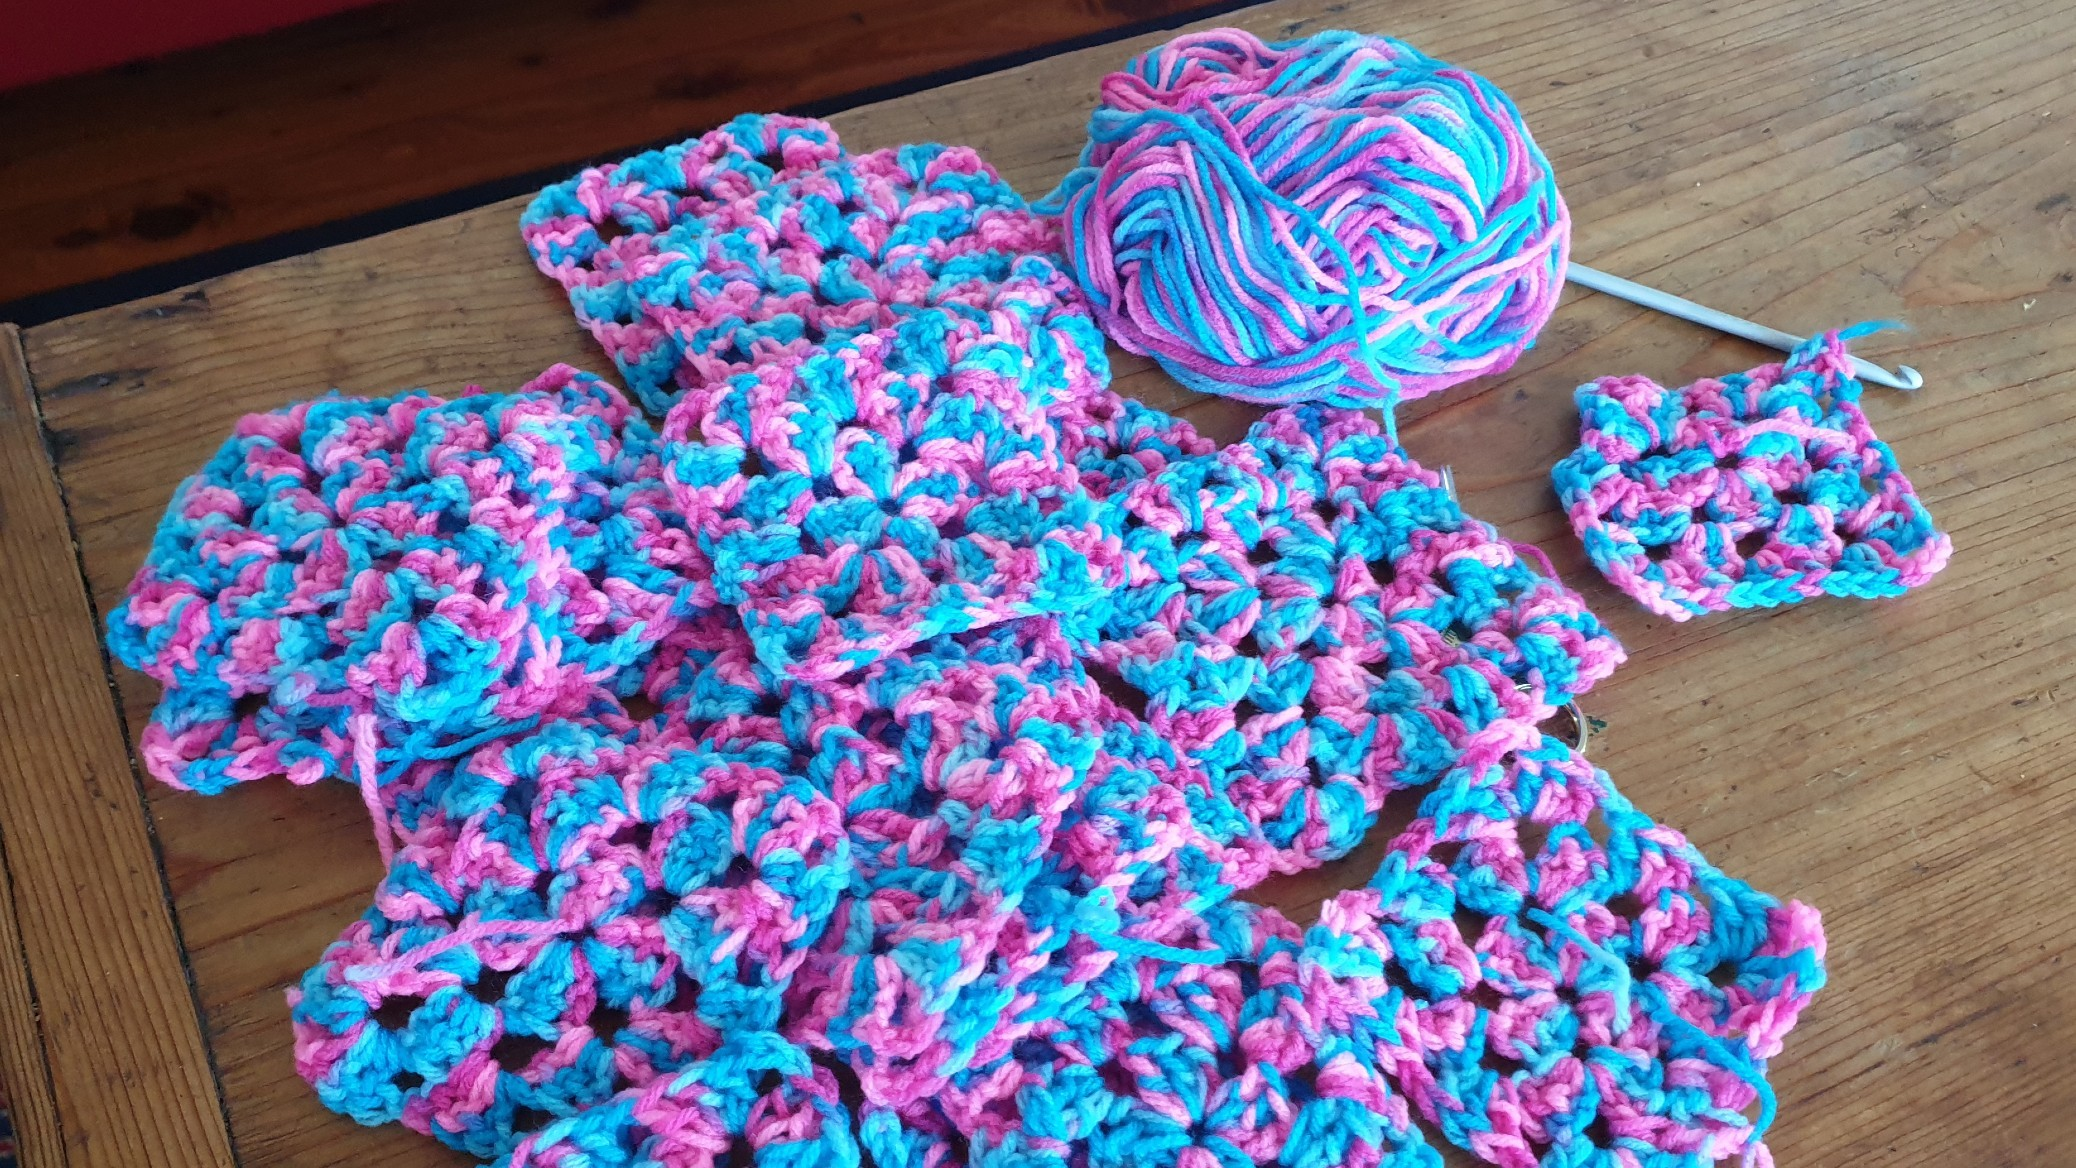 A ball of wool sits next to a pile of crochet granny squares and a crochet hook.